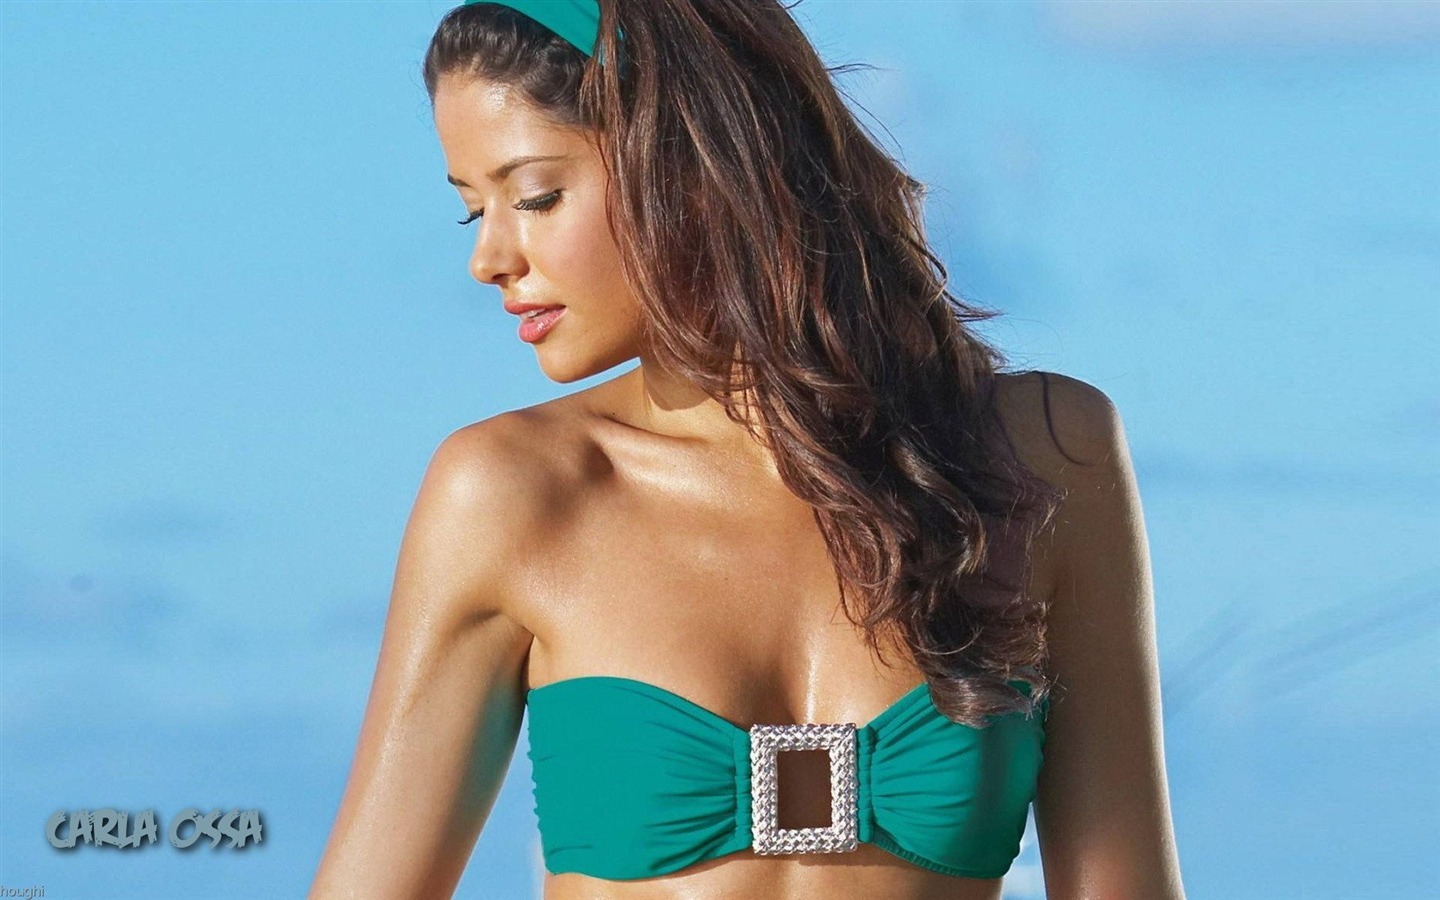 Carla Ossa #040 - 1440x900 Wallpapers Pictures Photos Images